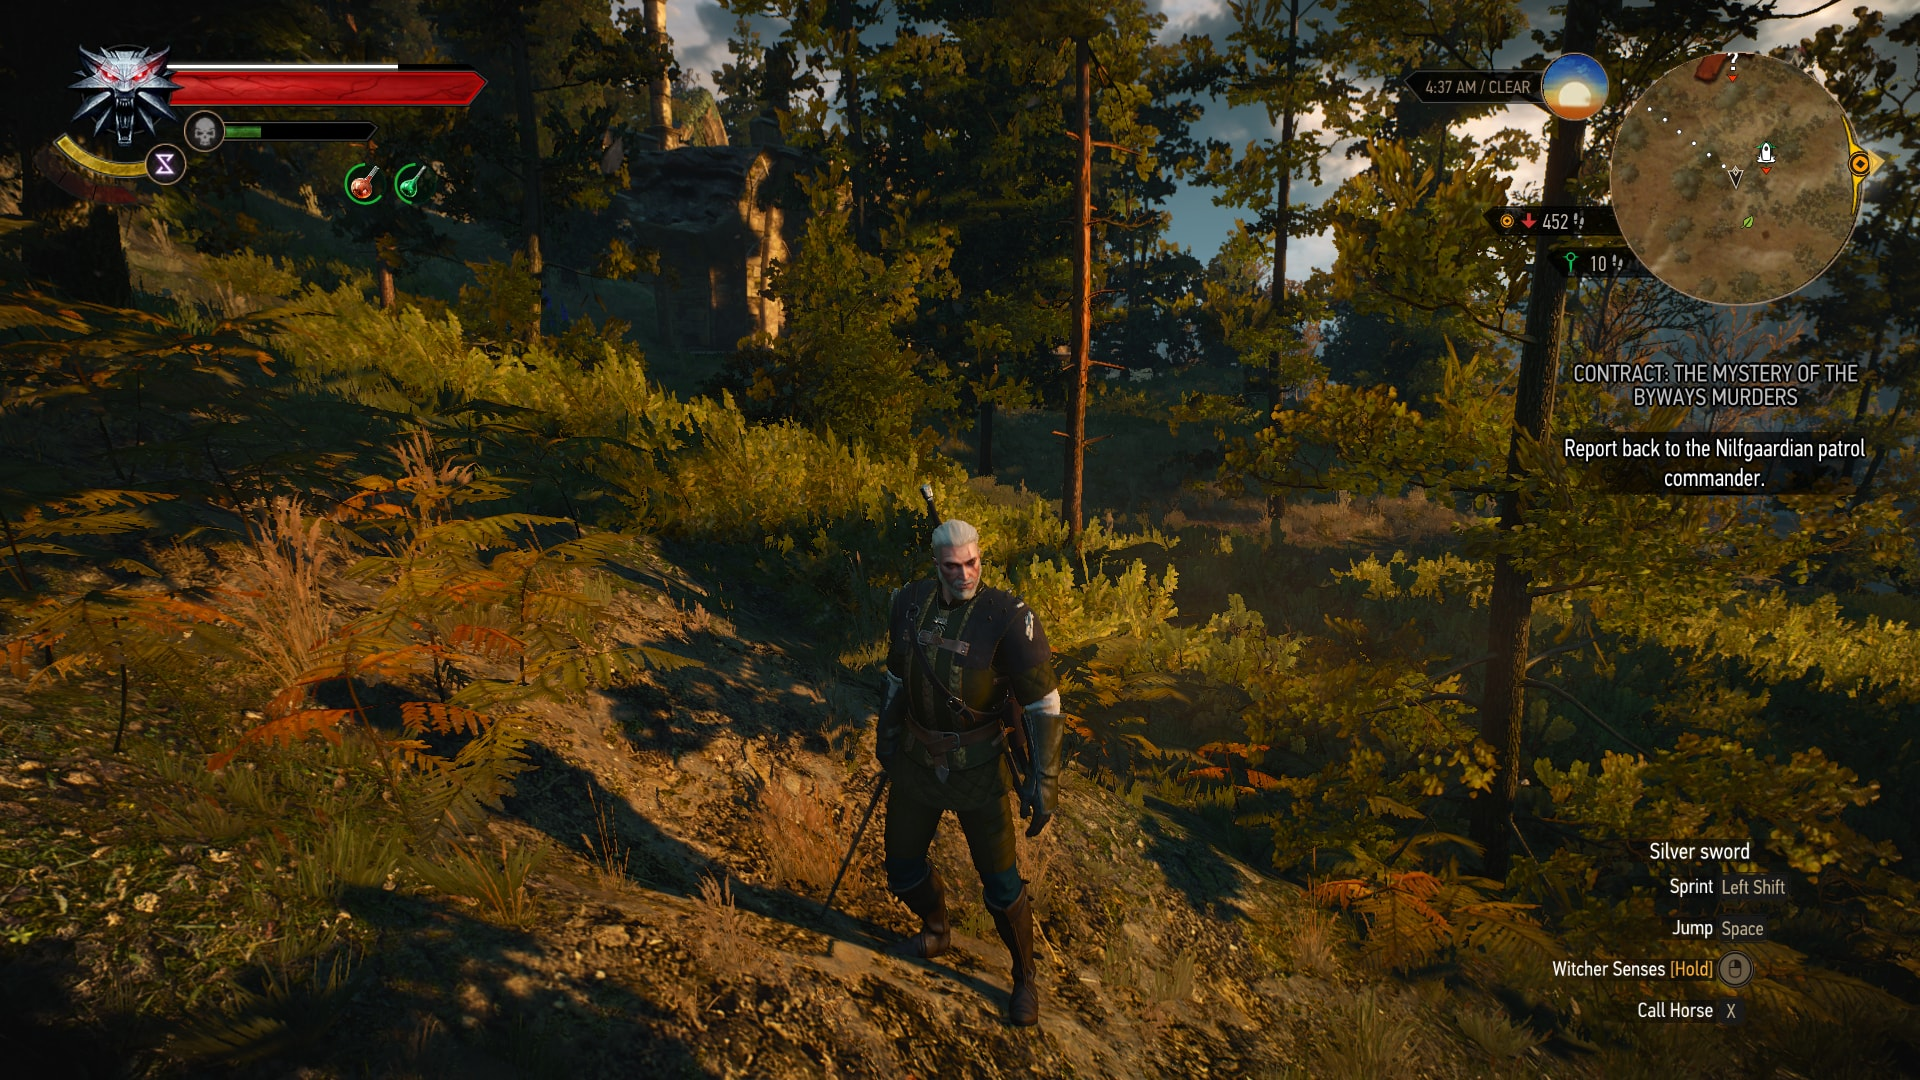 Pc The Witcher 3 Is It Possible To Take Screenshots In